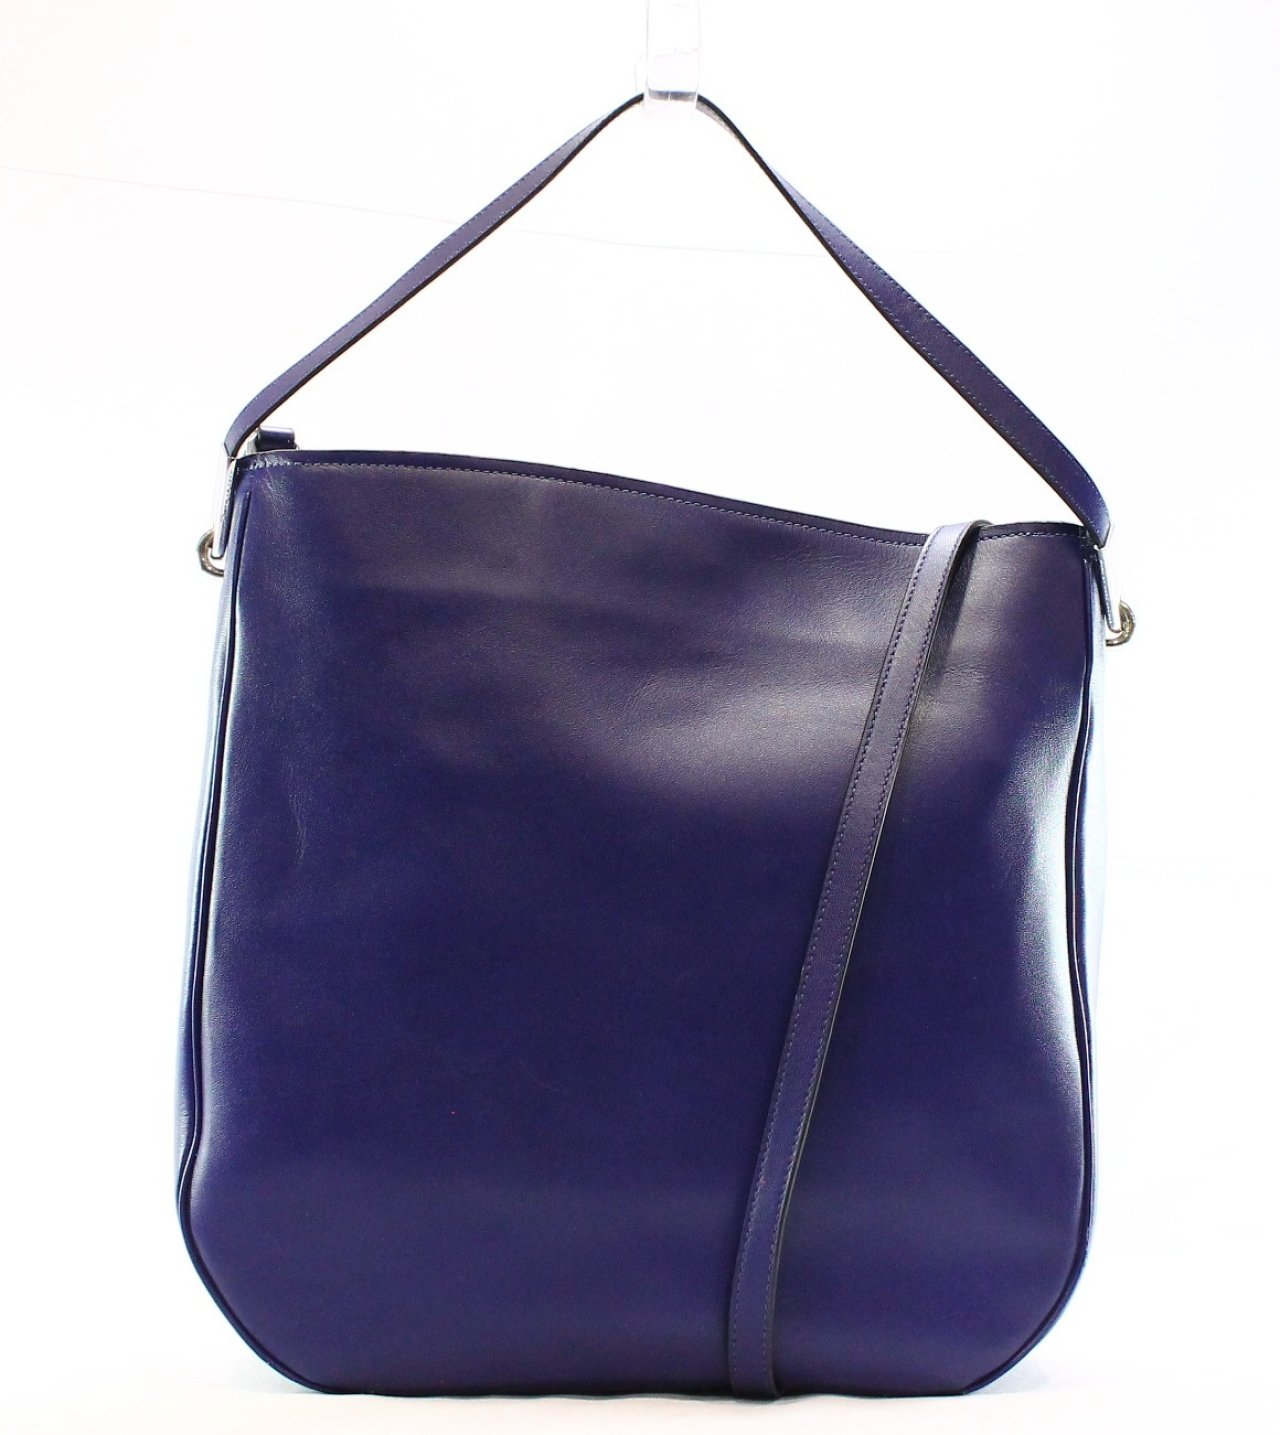 ... Marc Jacobs NEW Ligero Mineral Blue Leather Large Hobo Bag Purse 428